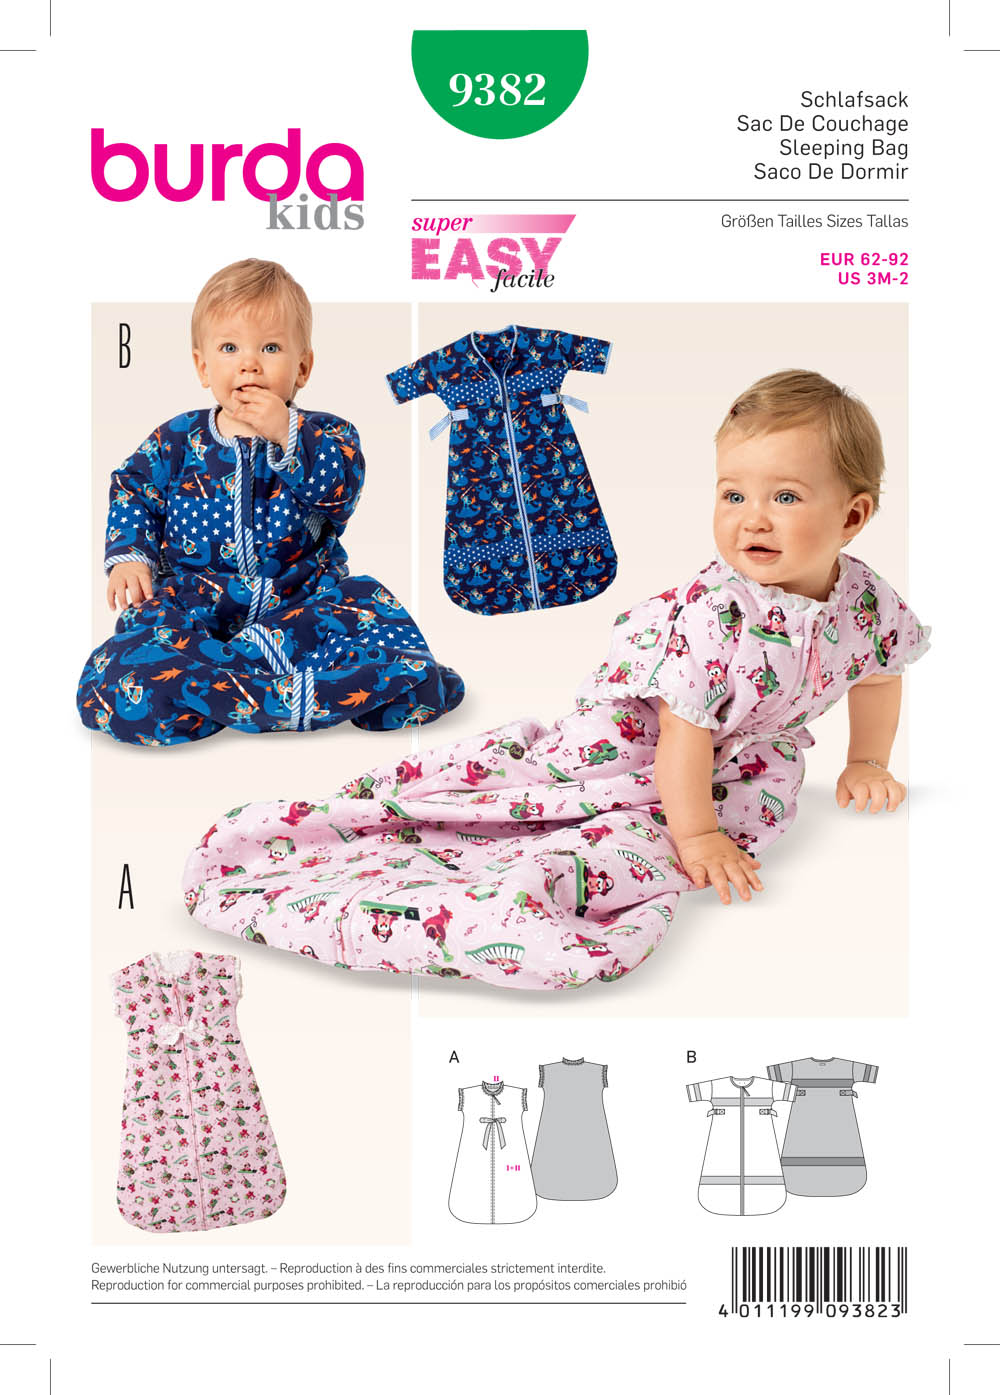 Baby Sleeping Bag Pattern : sleeping, pattern, Burda, Babies', Sleeping